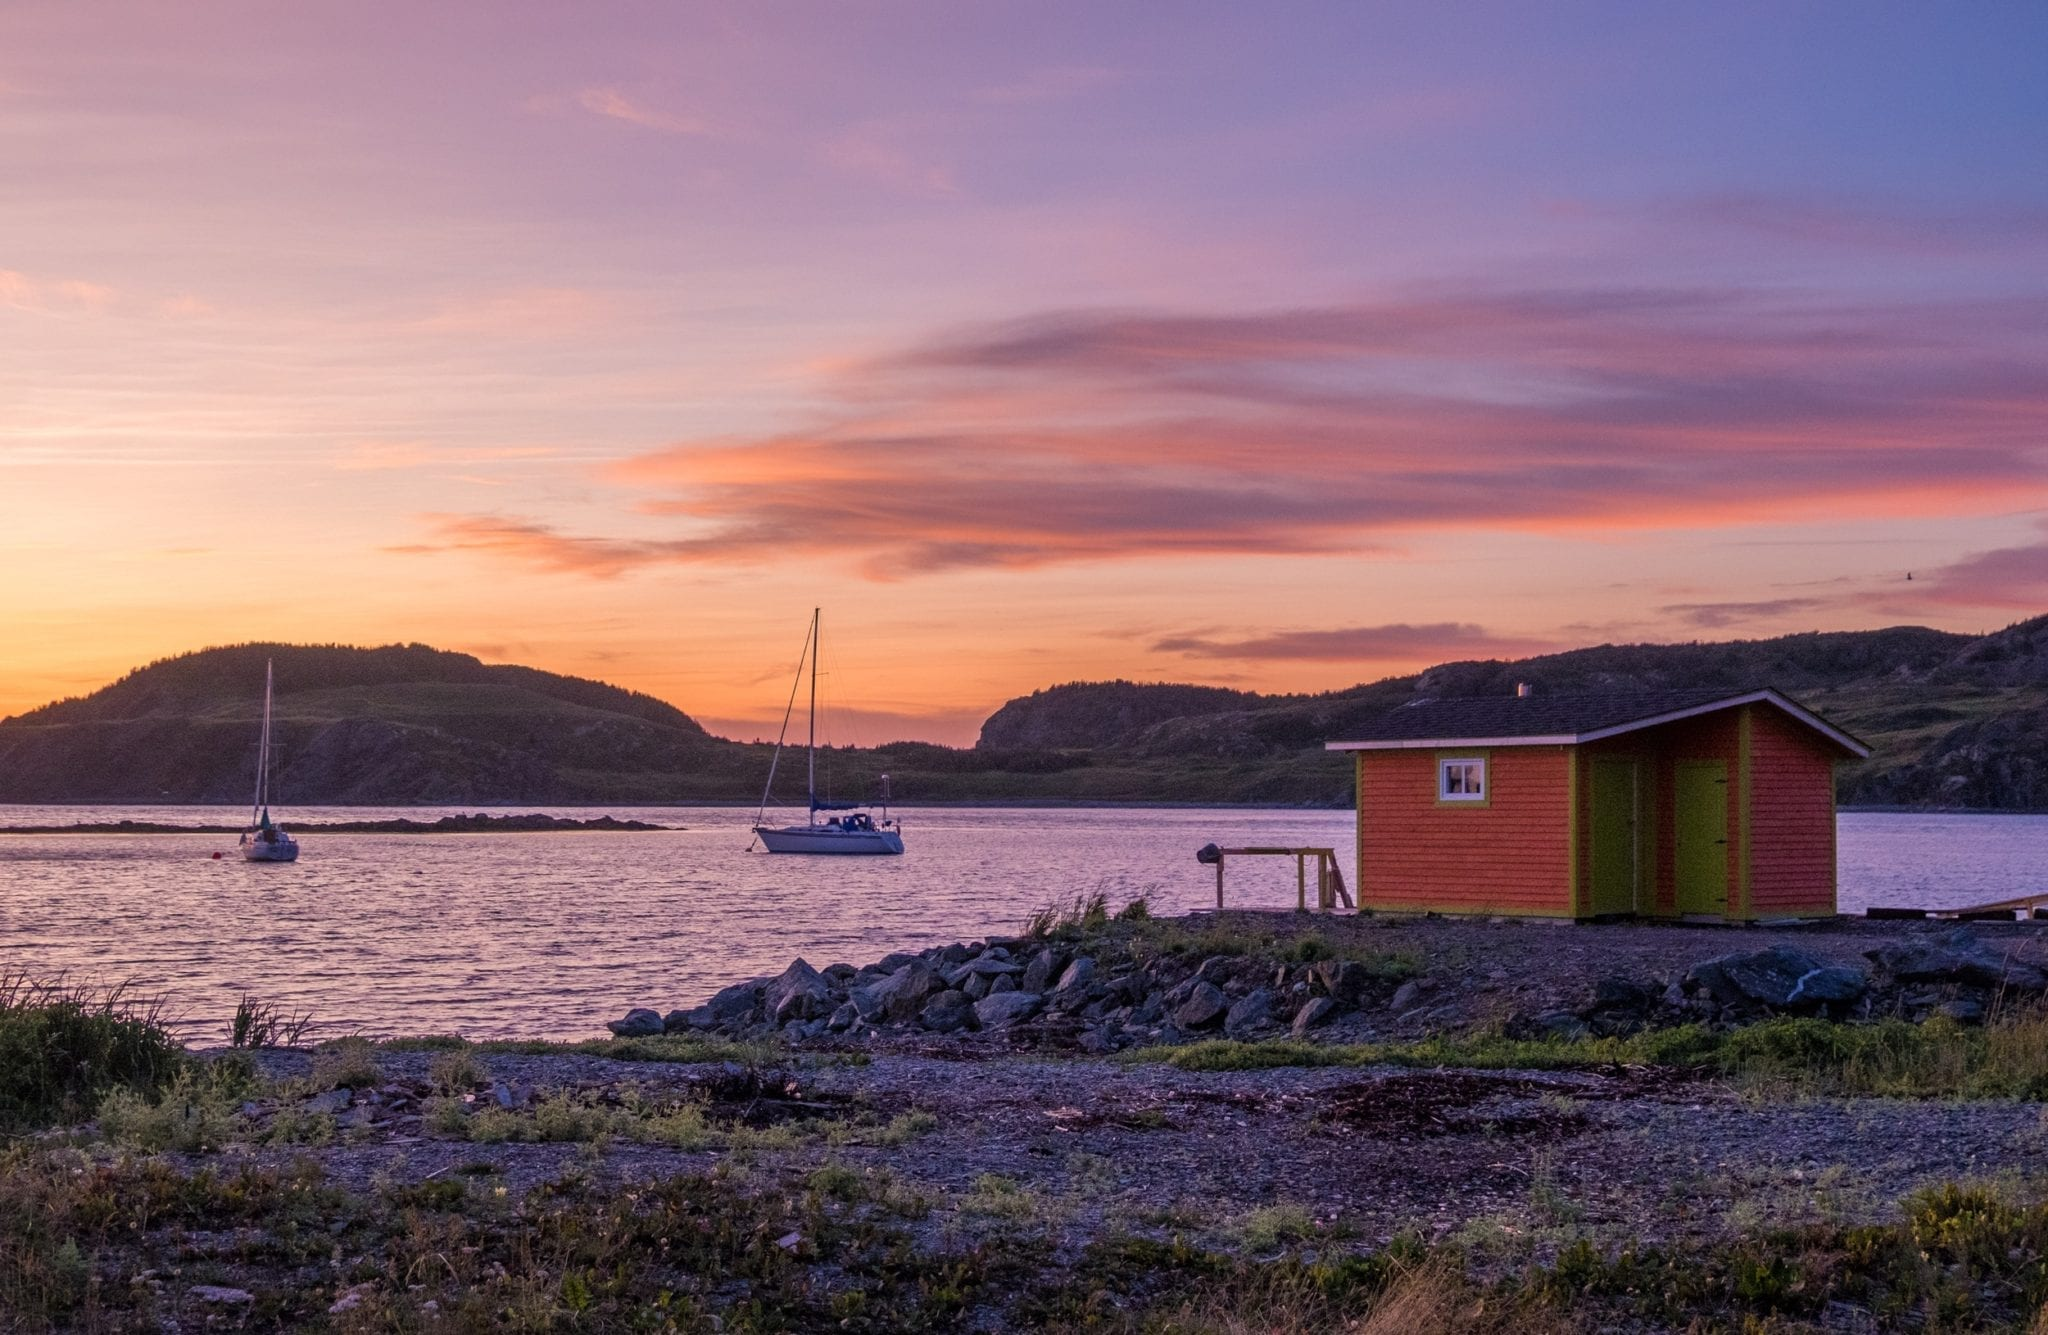 A sunset with a light purple sky and pink and dark purple clouds, in front of a red fishing hut and a sailboat